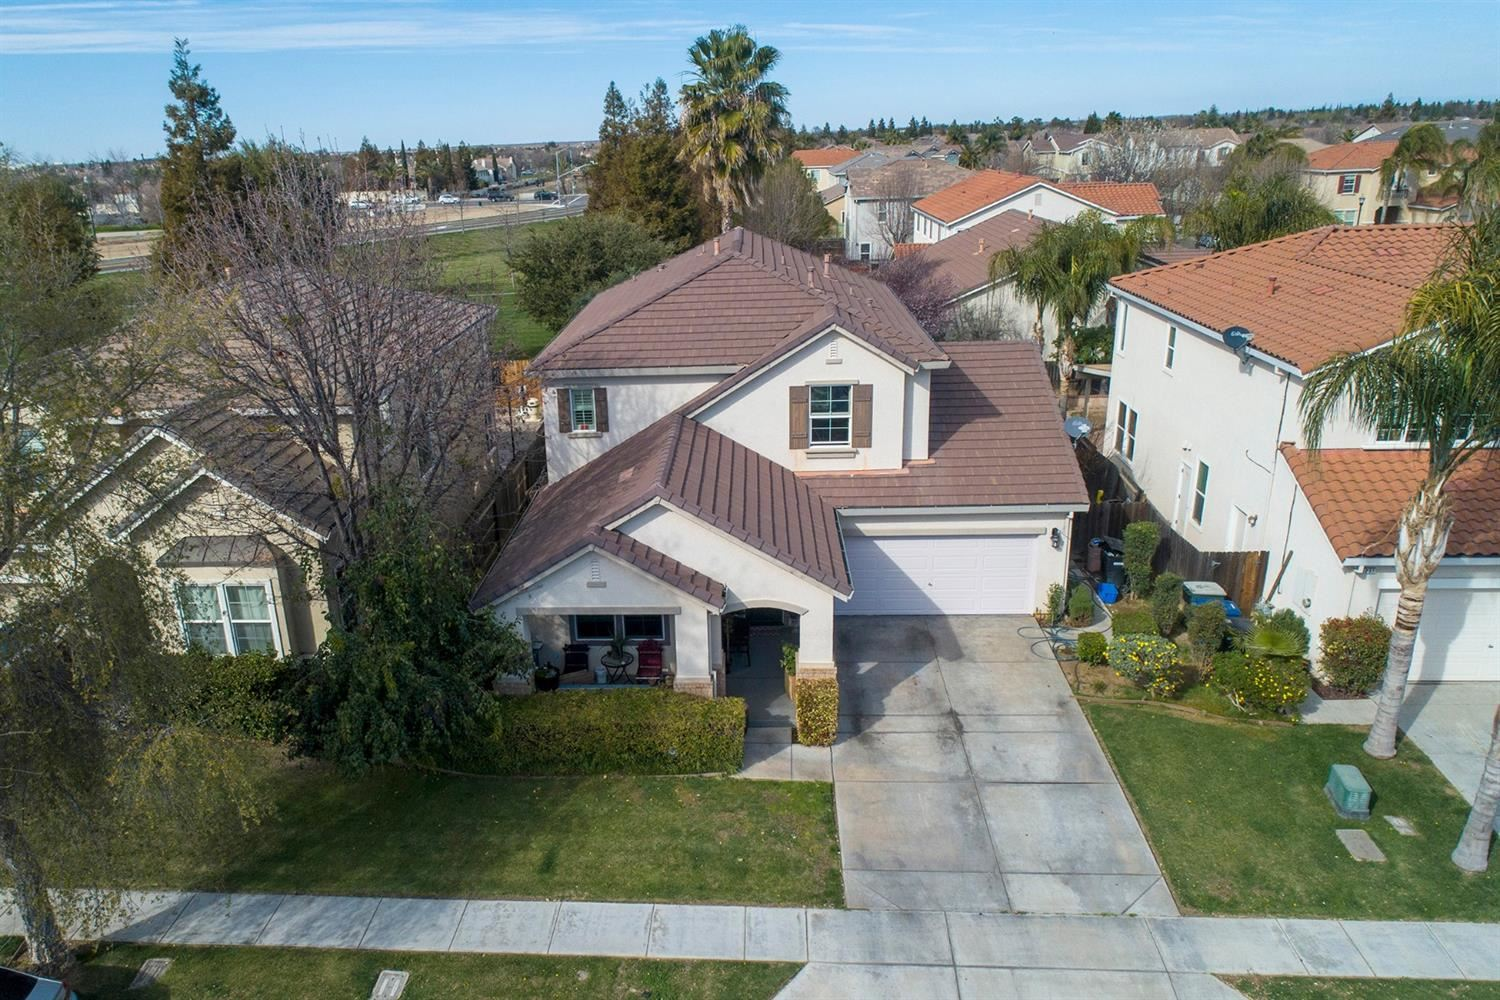 1241 Fawn Lily Drive, Patterson, CA 95363 - MLS#: 221009220